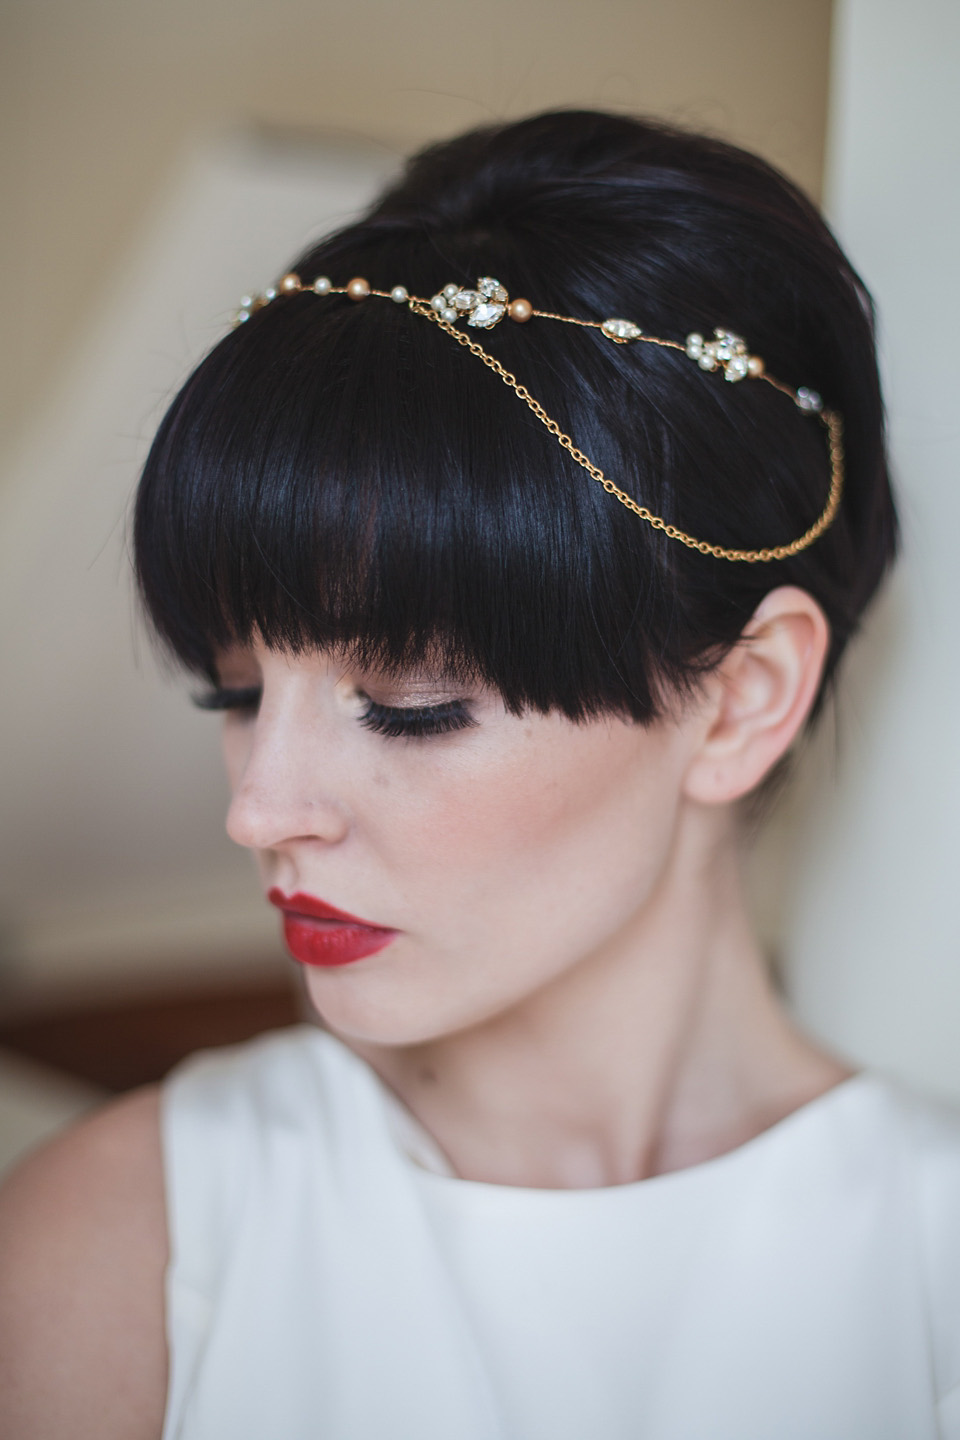 Art Nouveau Bride: Delicate Gold and Intricately Embellished Wedding Accessories